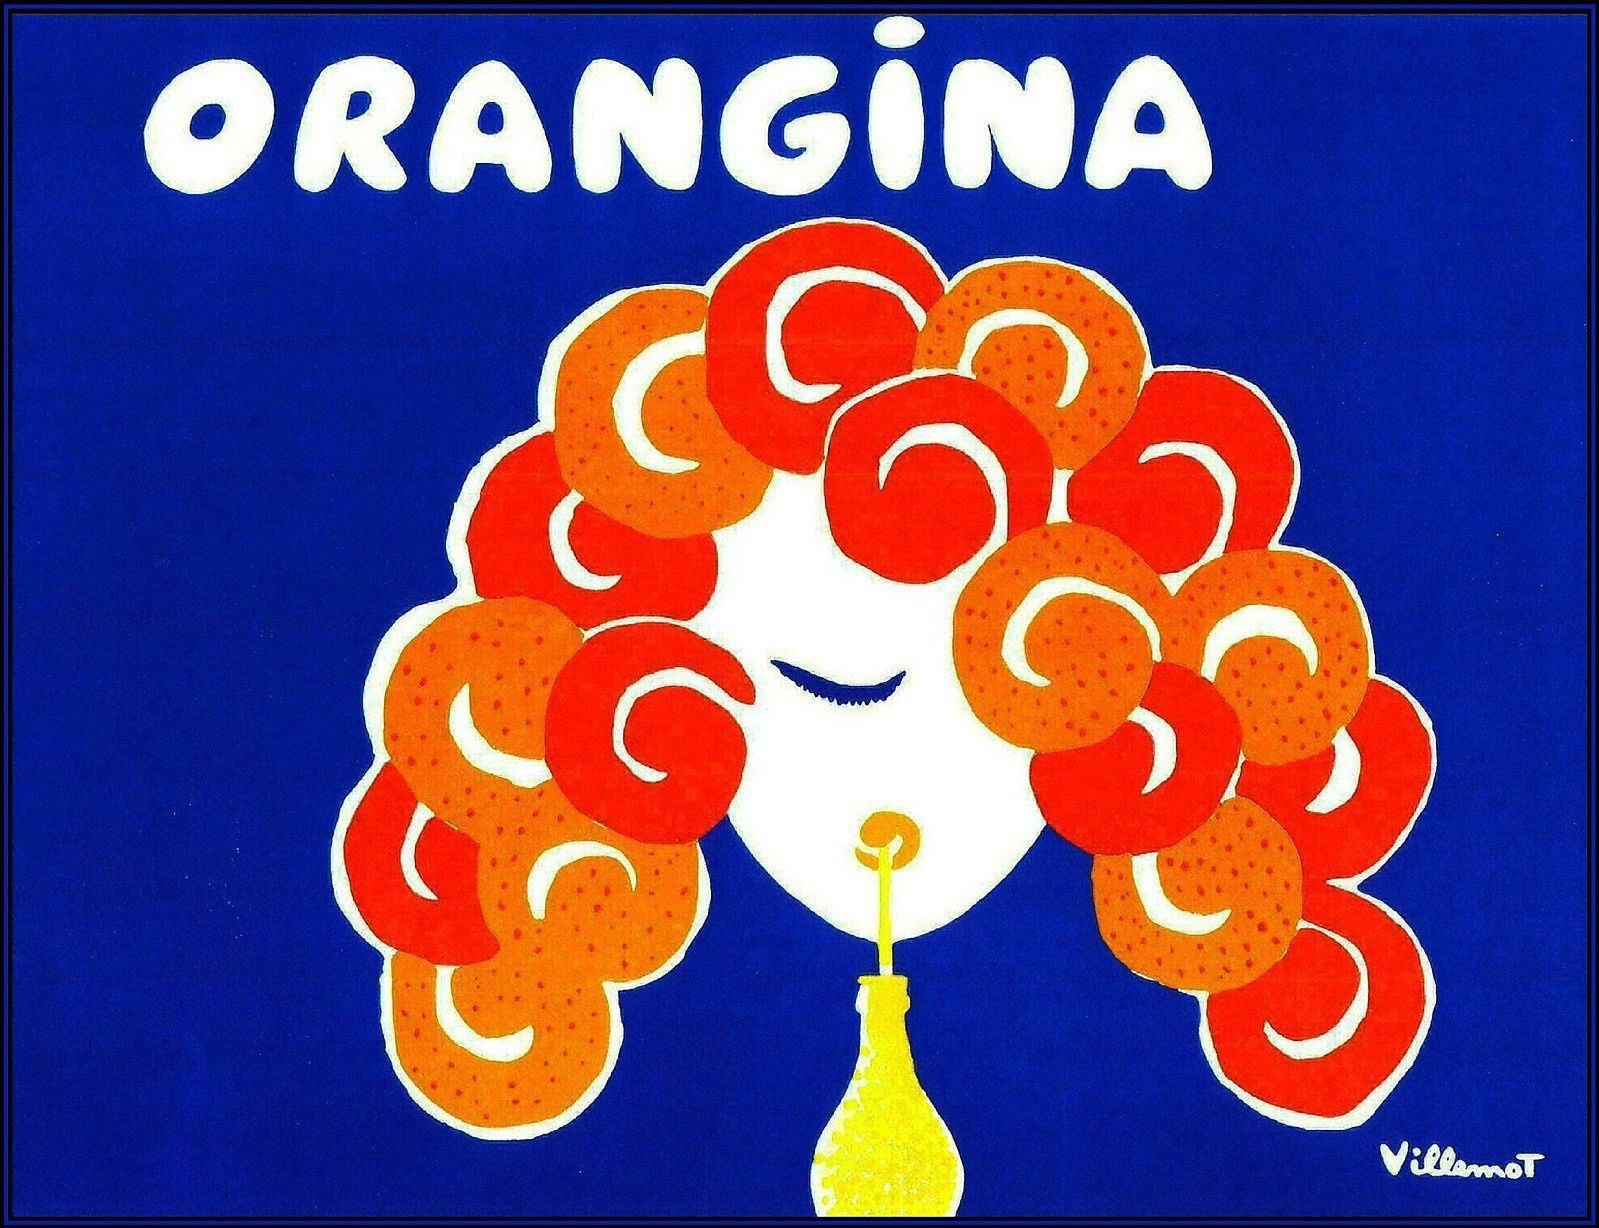 Poster Werbung Bernard Villemont Orangina Advertising Poster Collage